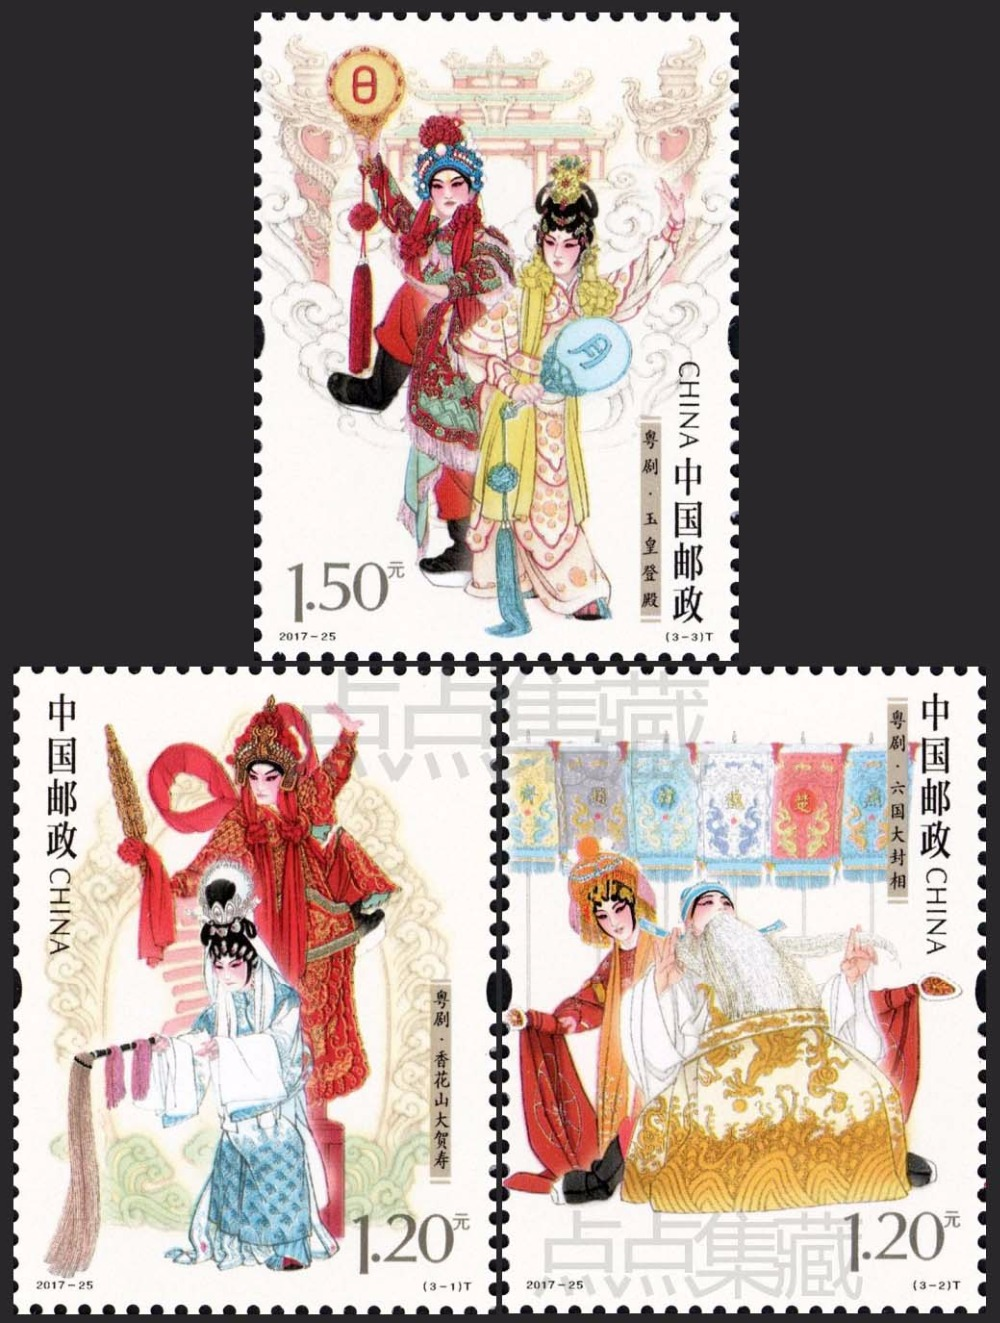 Us 0 5 3 Pcs Set Cantonese Opera 2017 25 China Post Stamps Postage Collection In Stamps From Home Garden On Aliexpress